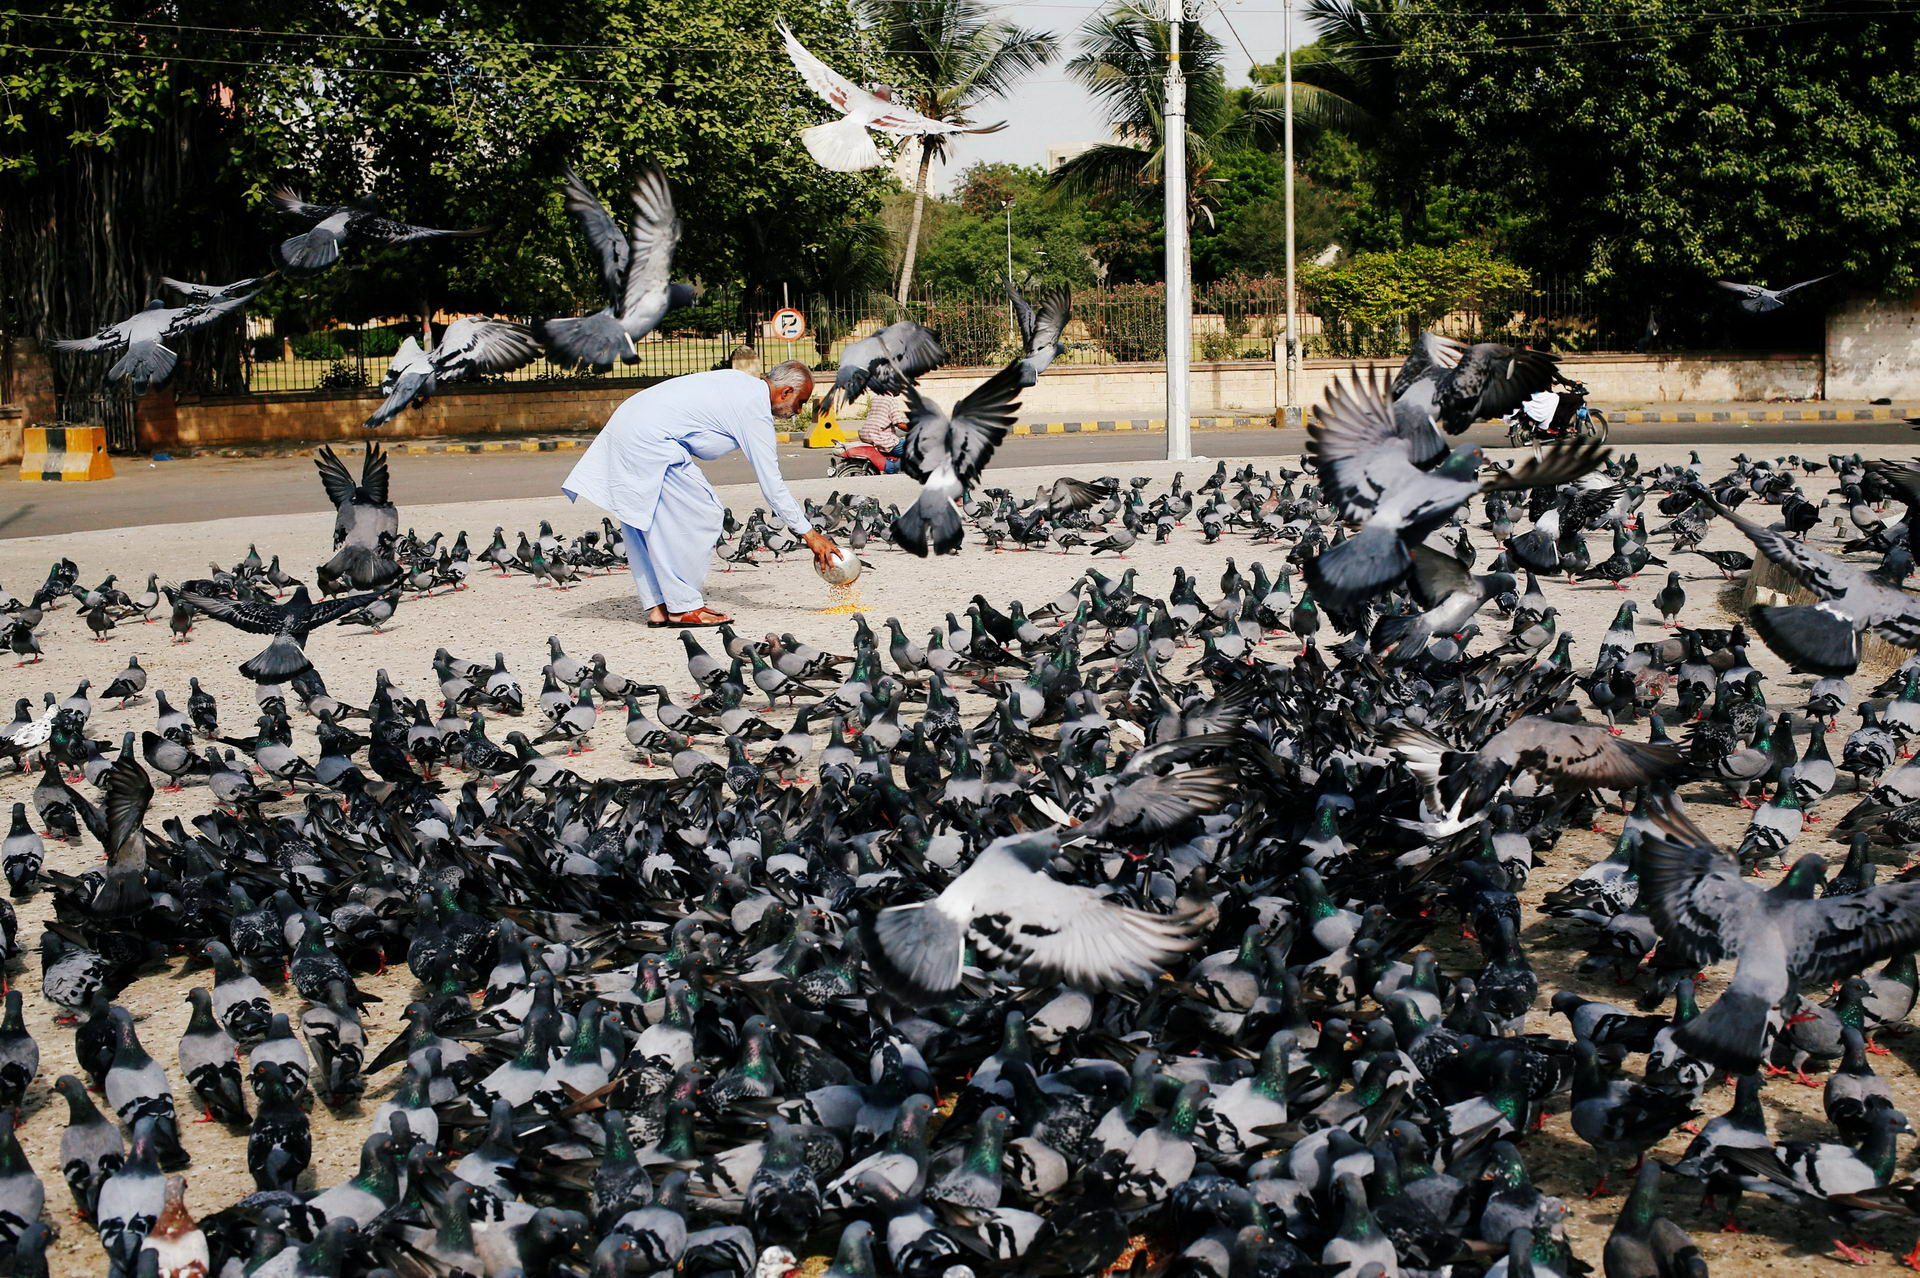 A man spreads a bucket of lentil feed for pigeons, as many believe feeding pigeons brings good luck, after Friday prayers during the holy month of Ramadan in Karachi